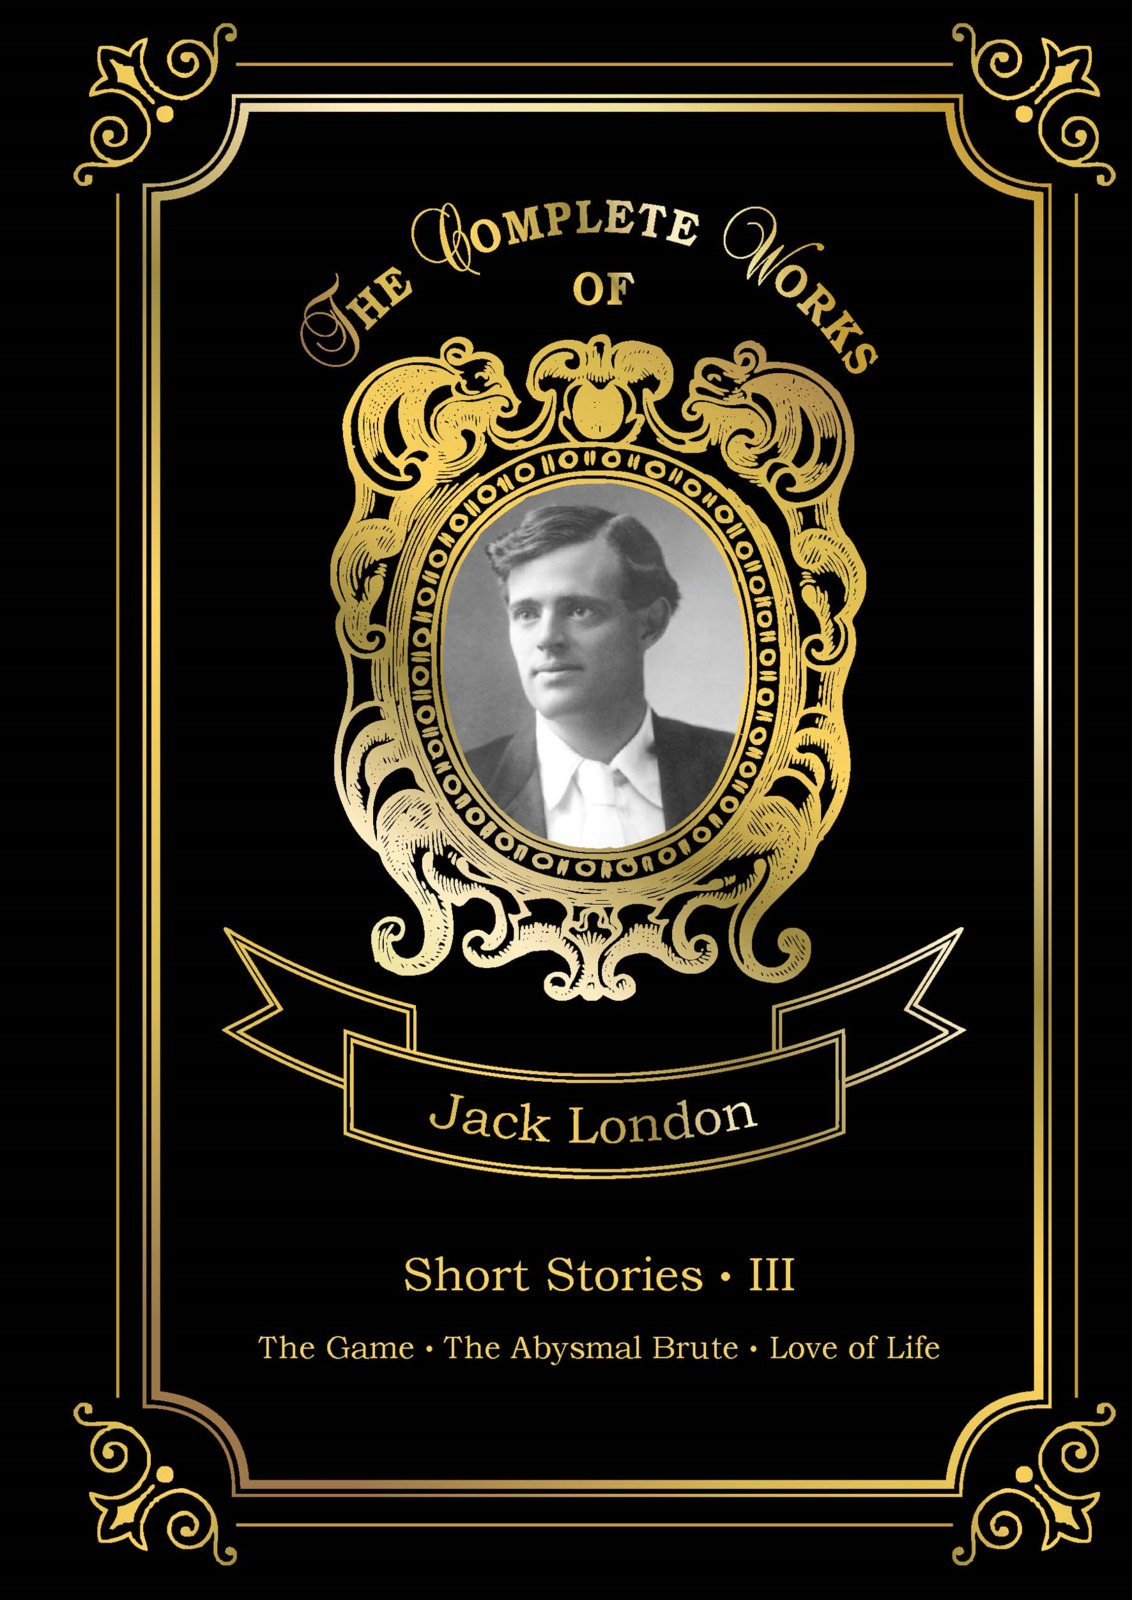 Jack London Short Stories III